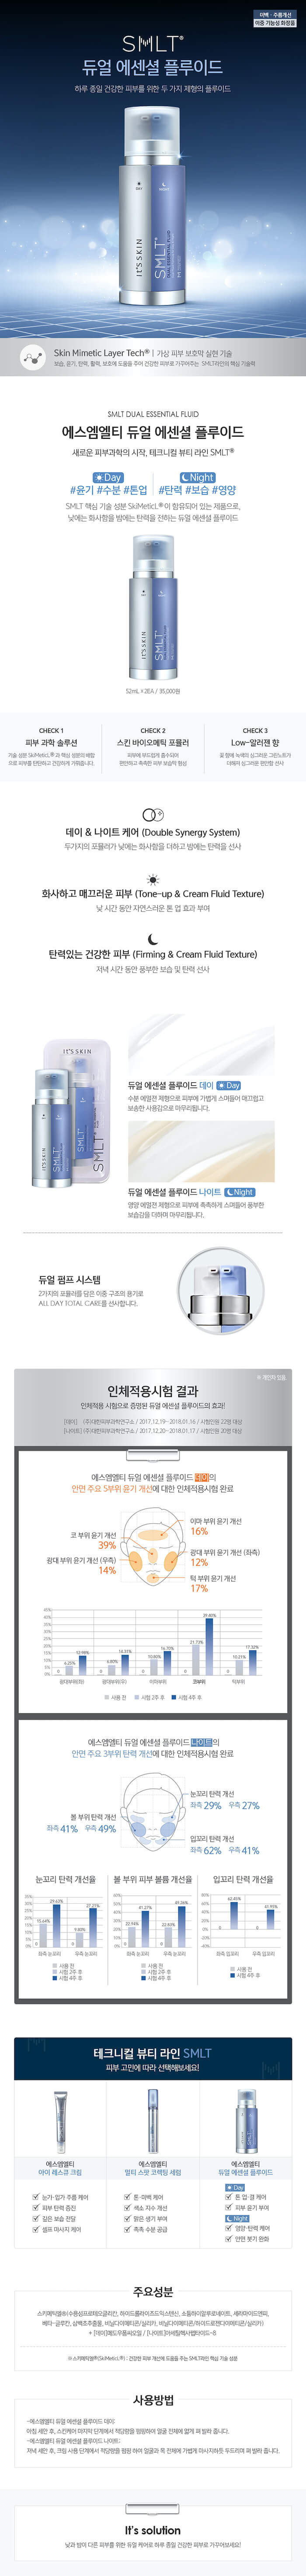 It's Skin SMLT Dual Essential Fluid 52 ml * 2ea